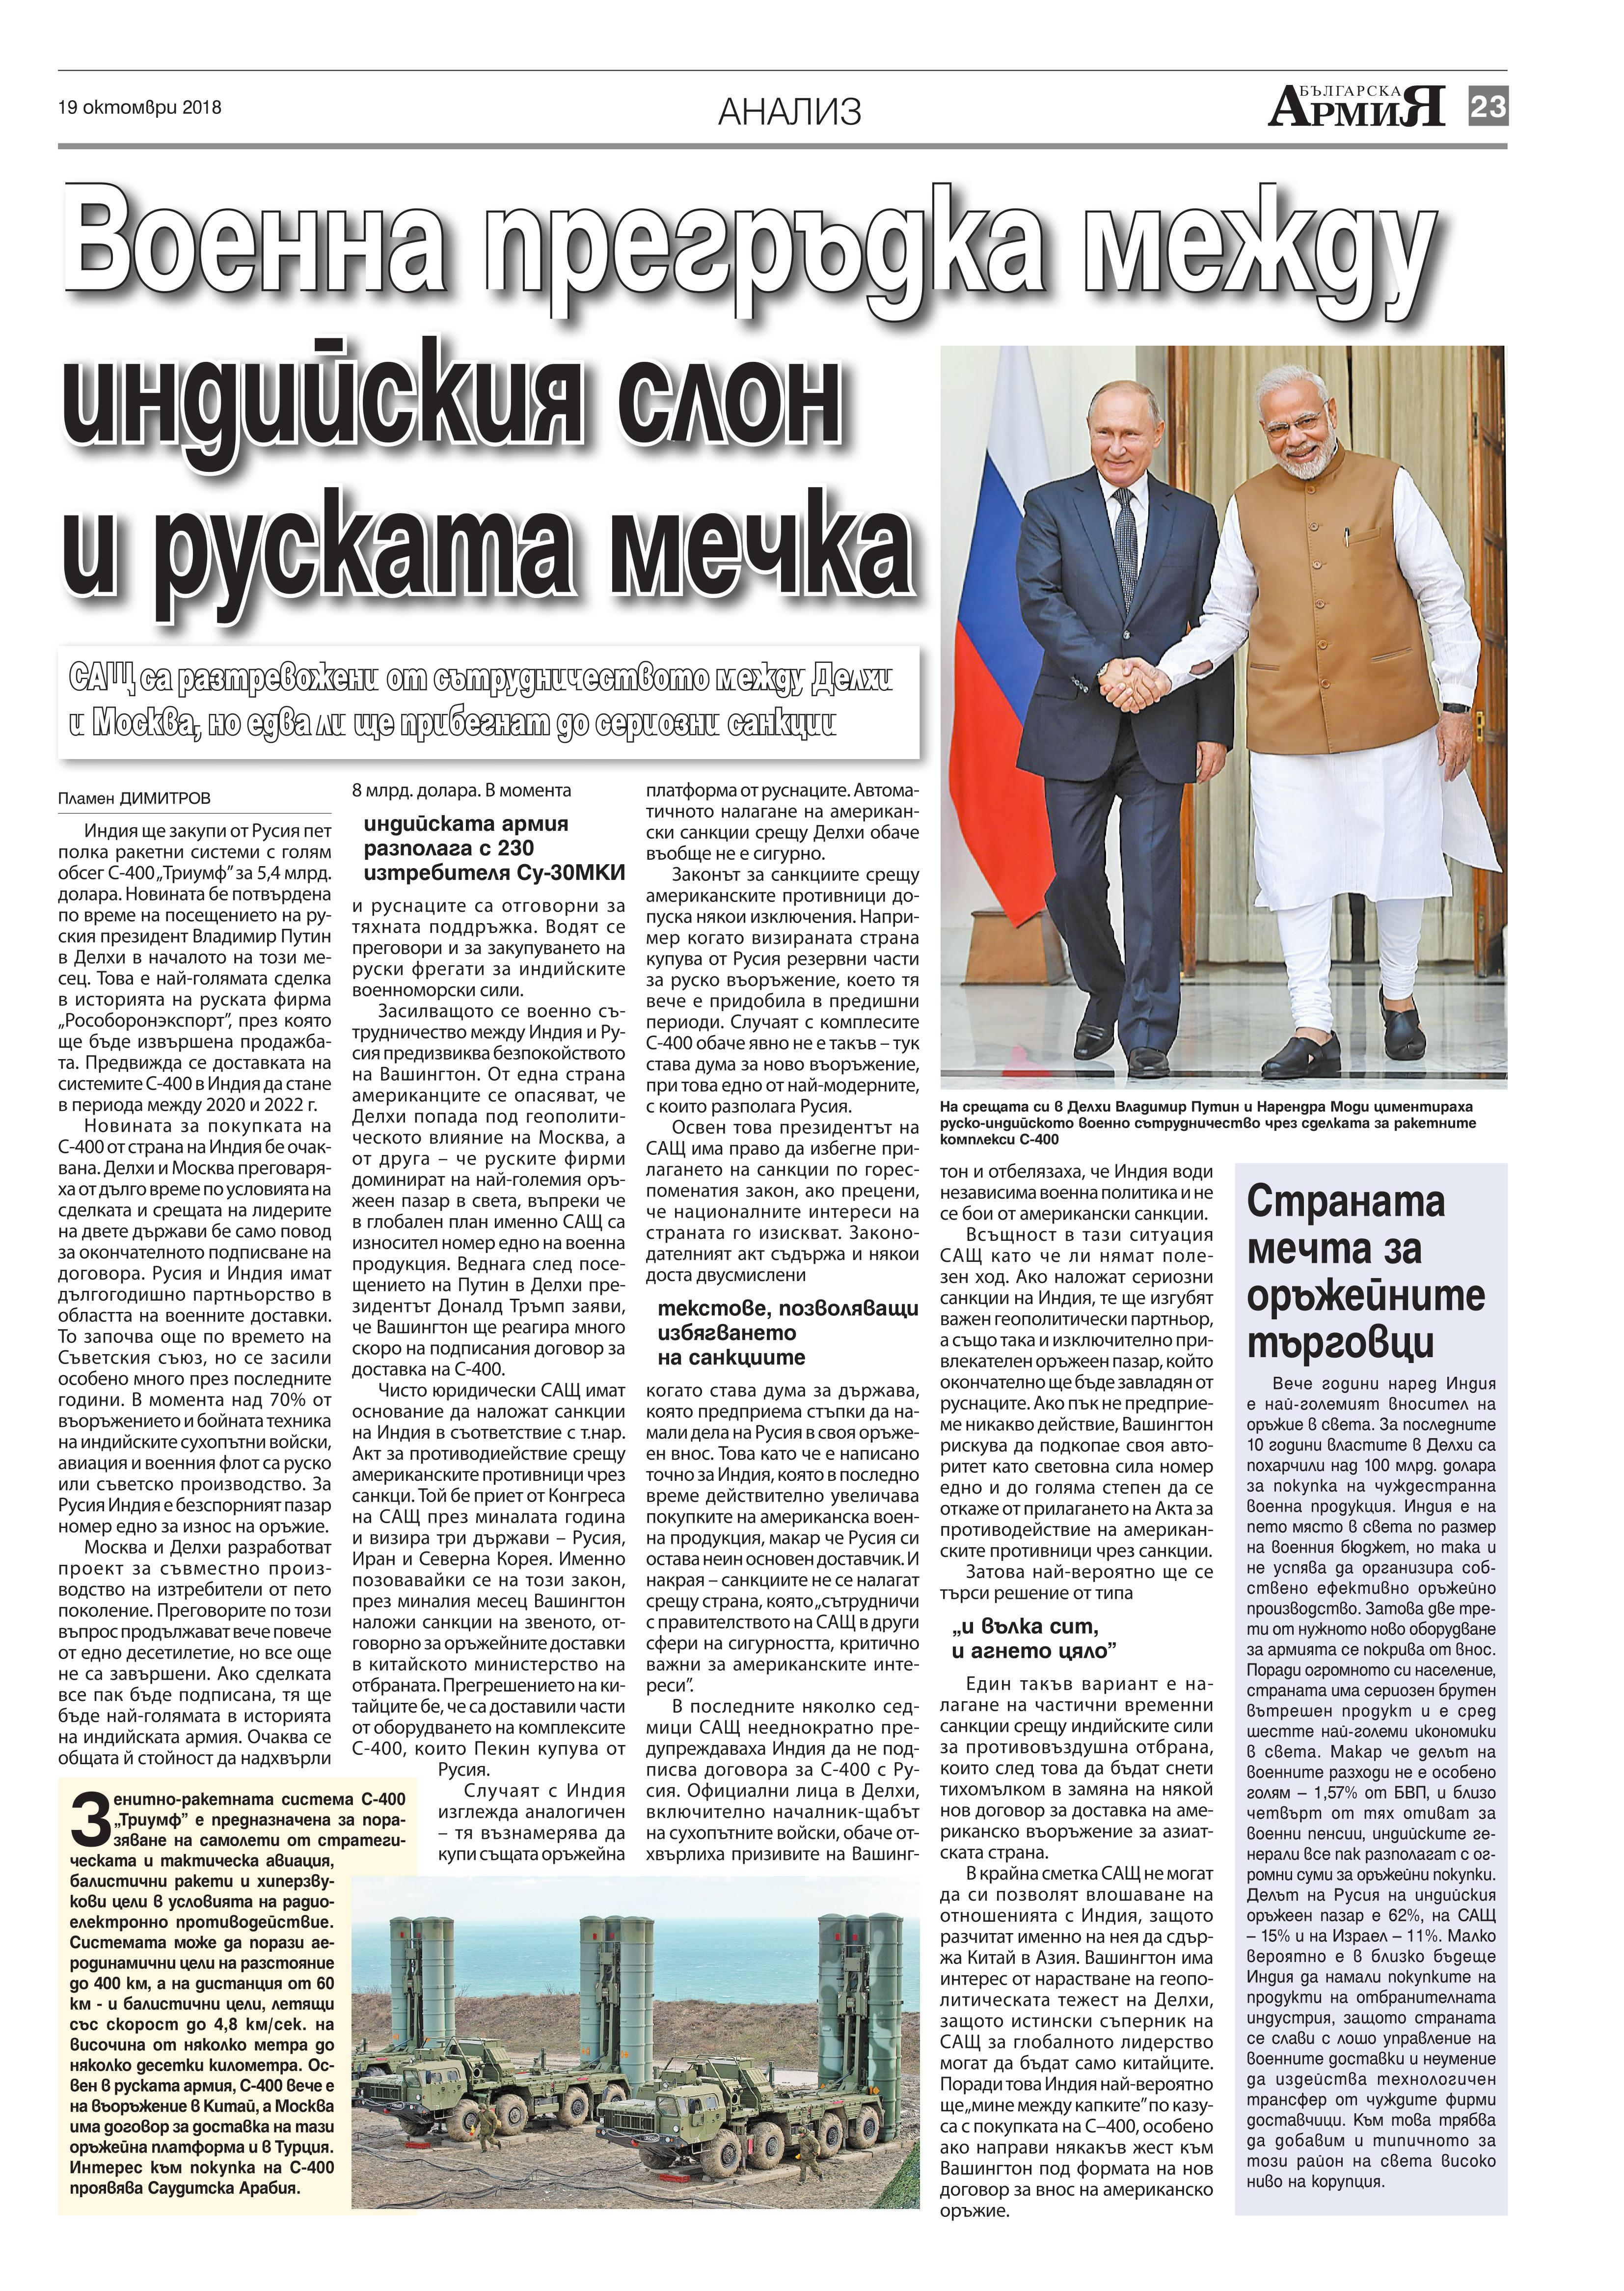 https://armymedia.bg/wp-content/uploads/2015/06/23.page1_-70.jpg